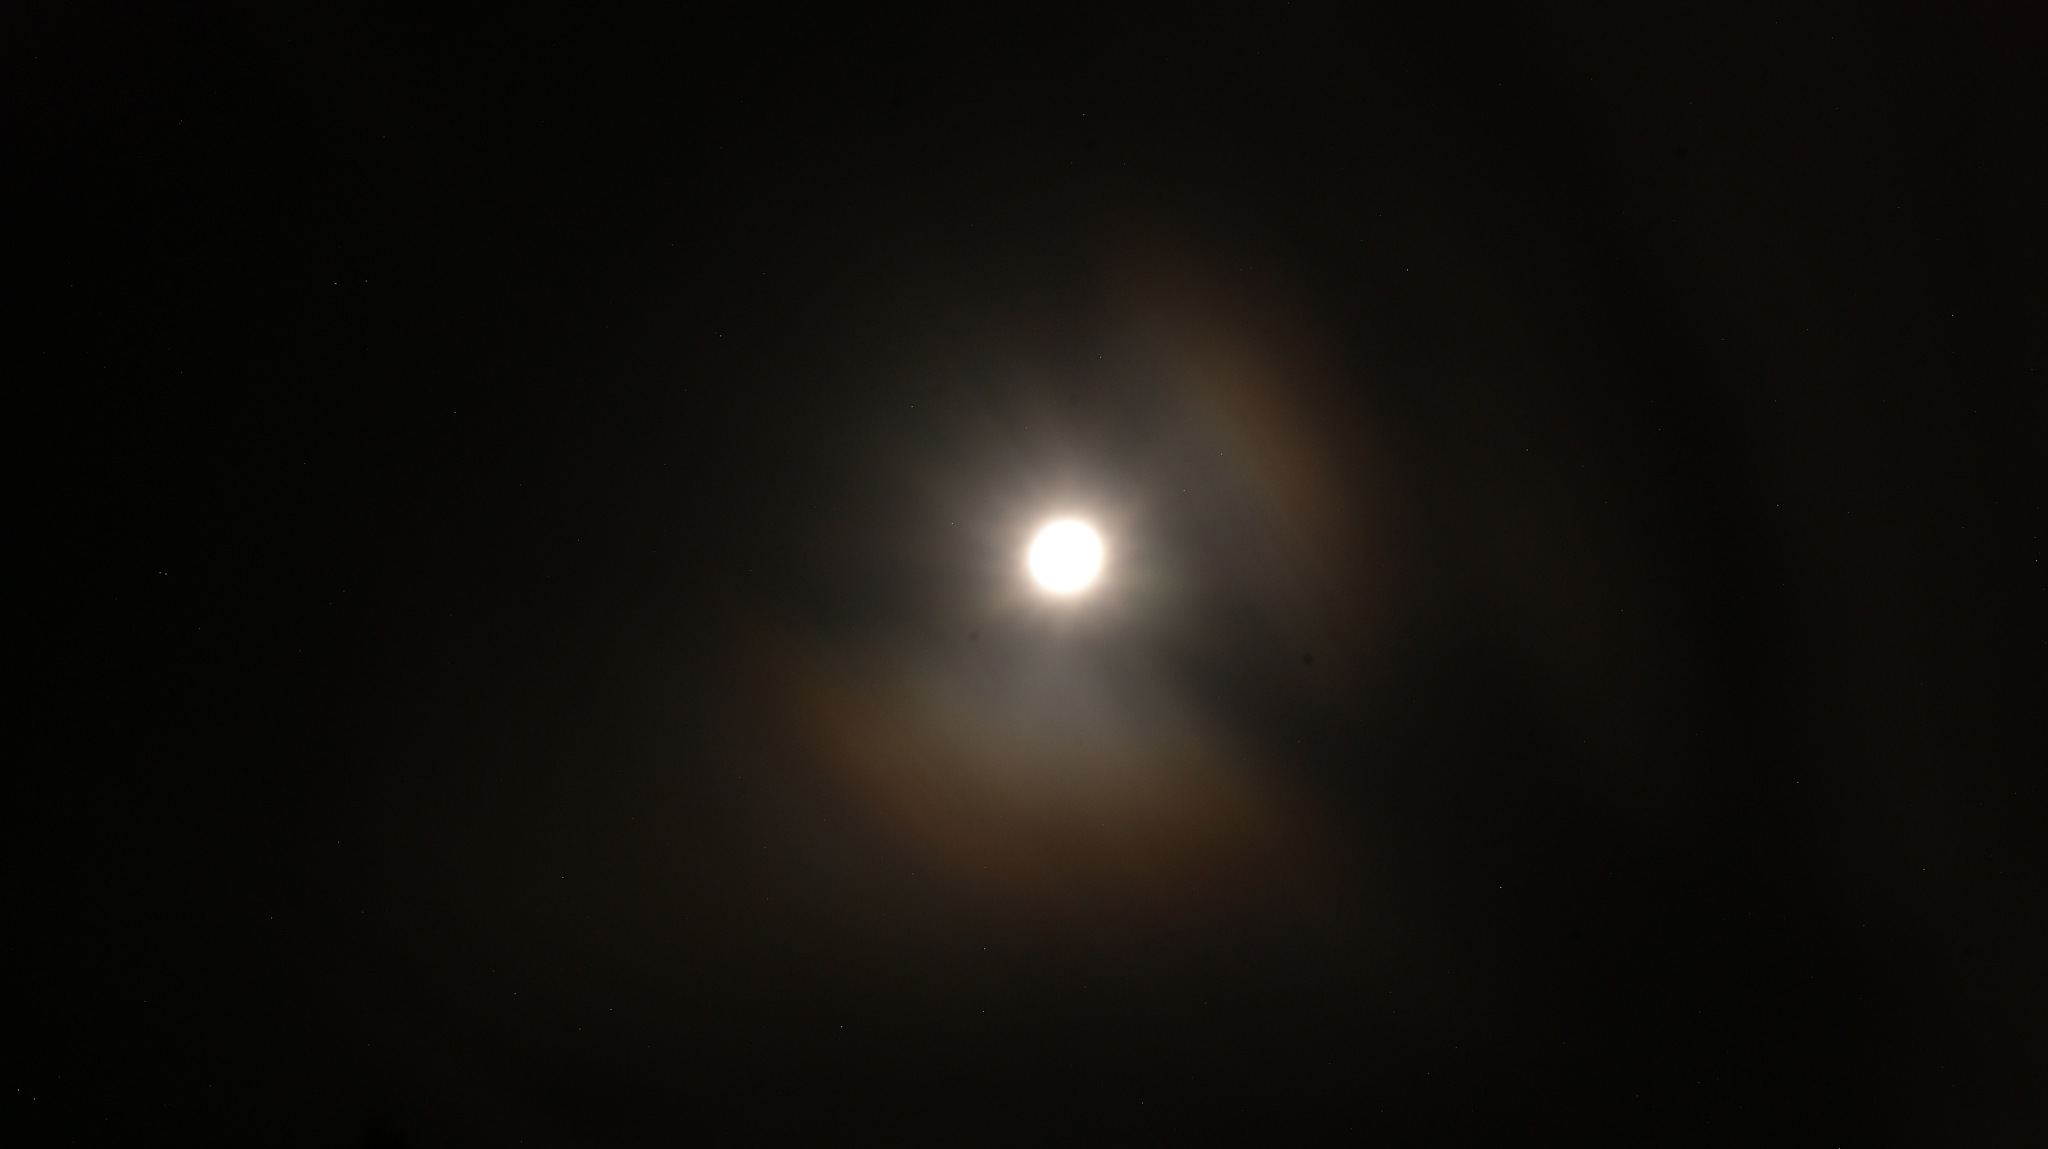 Took this picture of the moon and stars before noticing there was dirt on my lens by Simon D